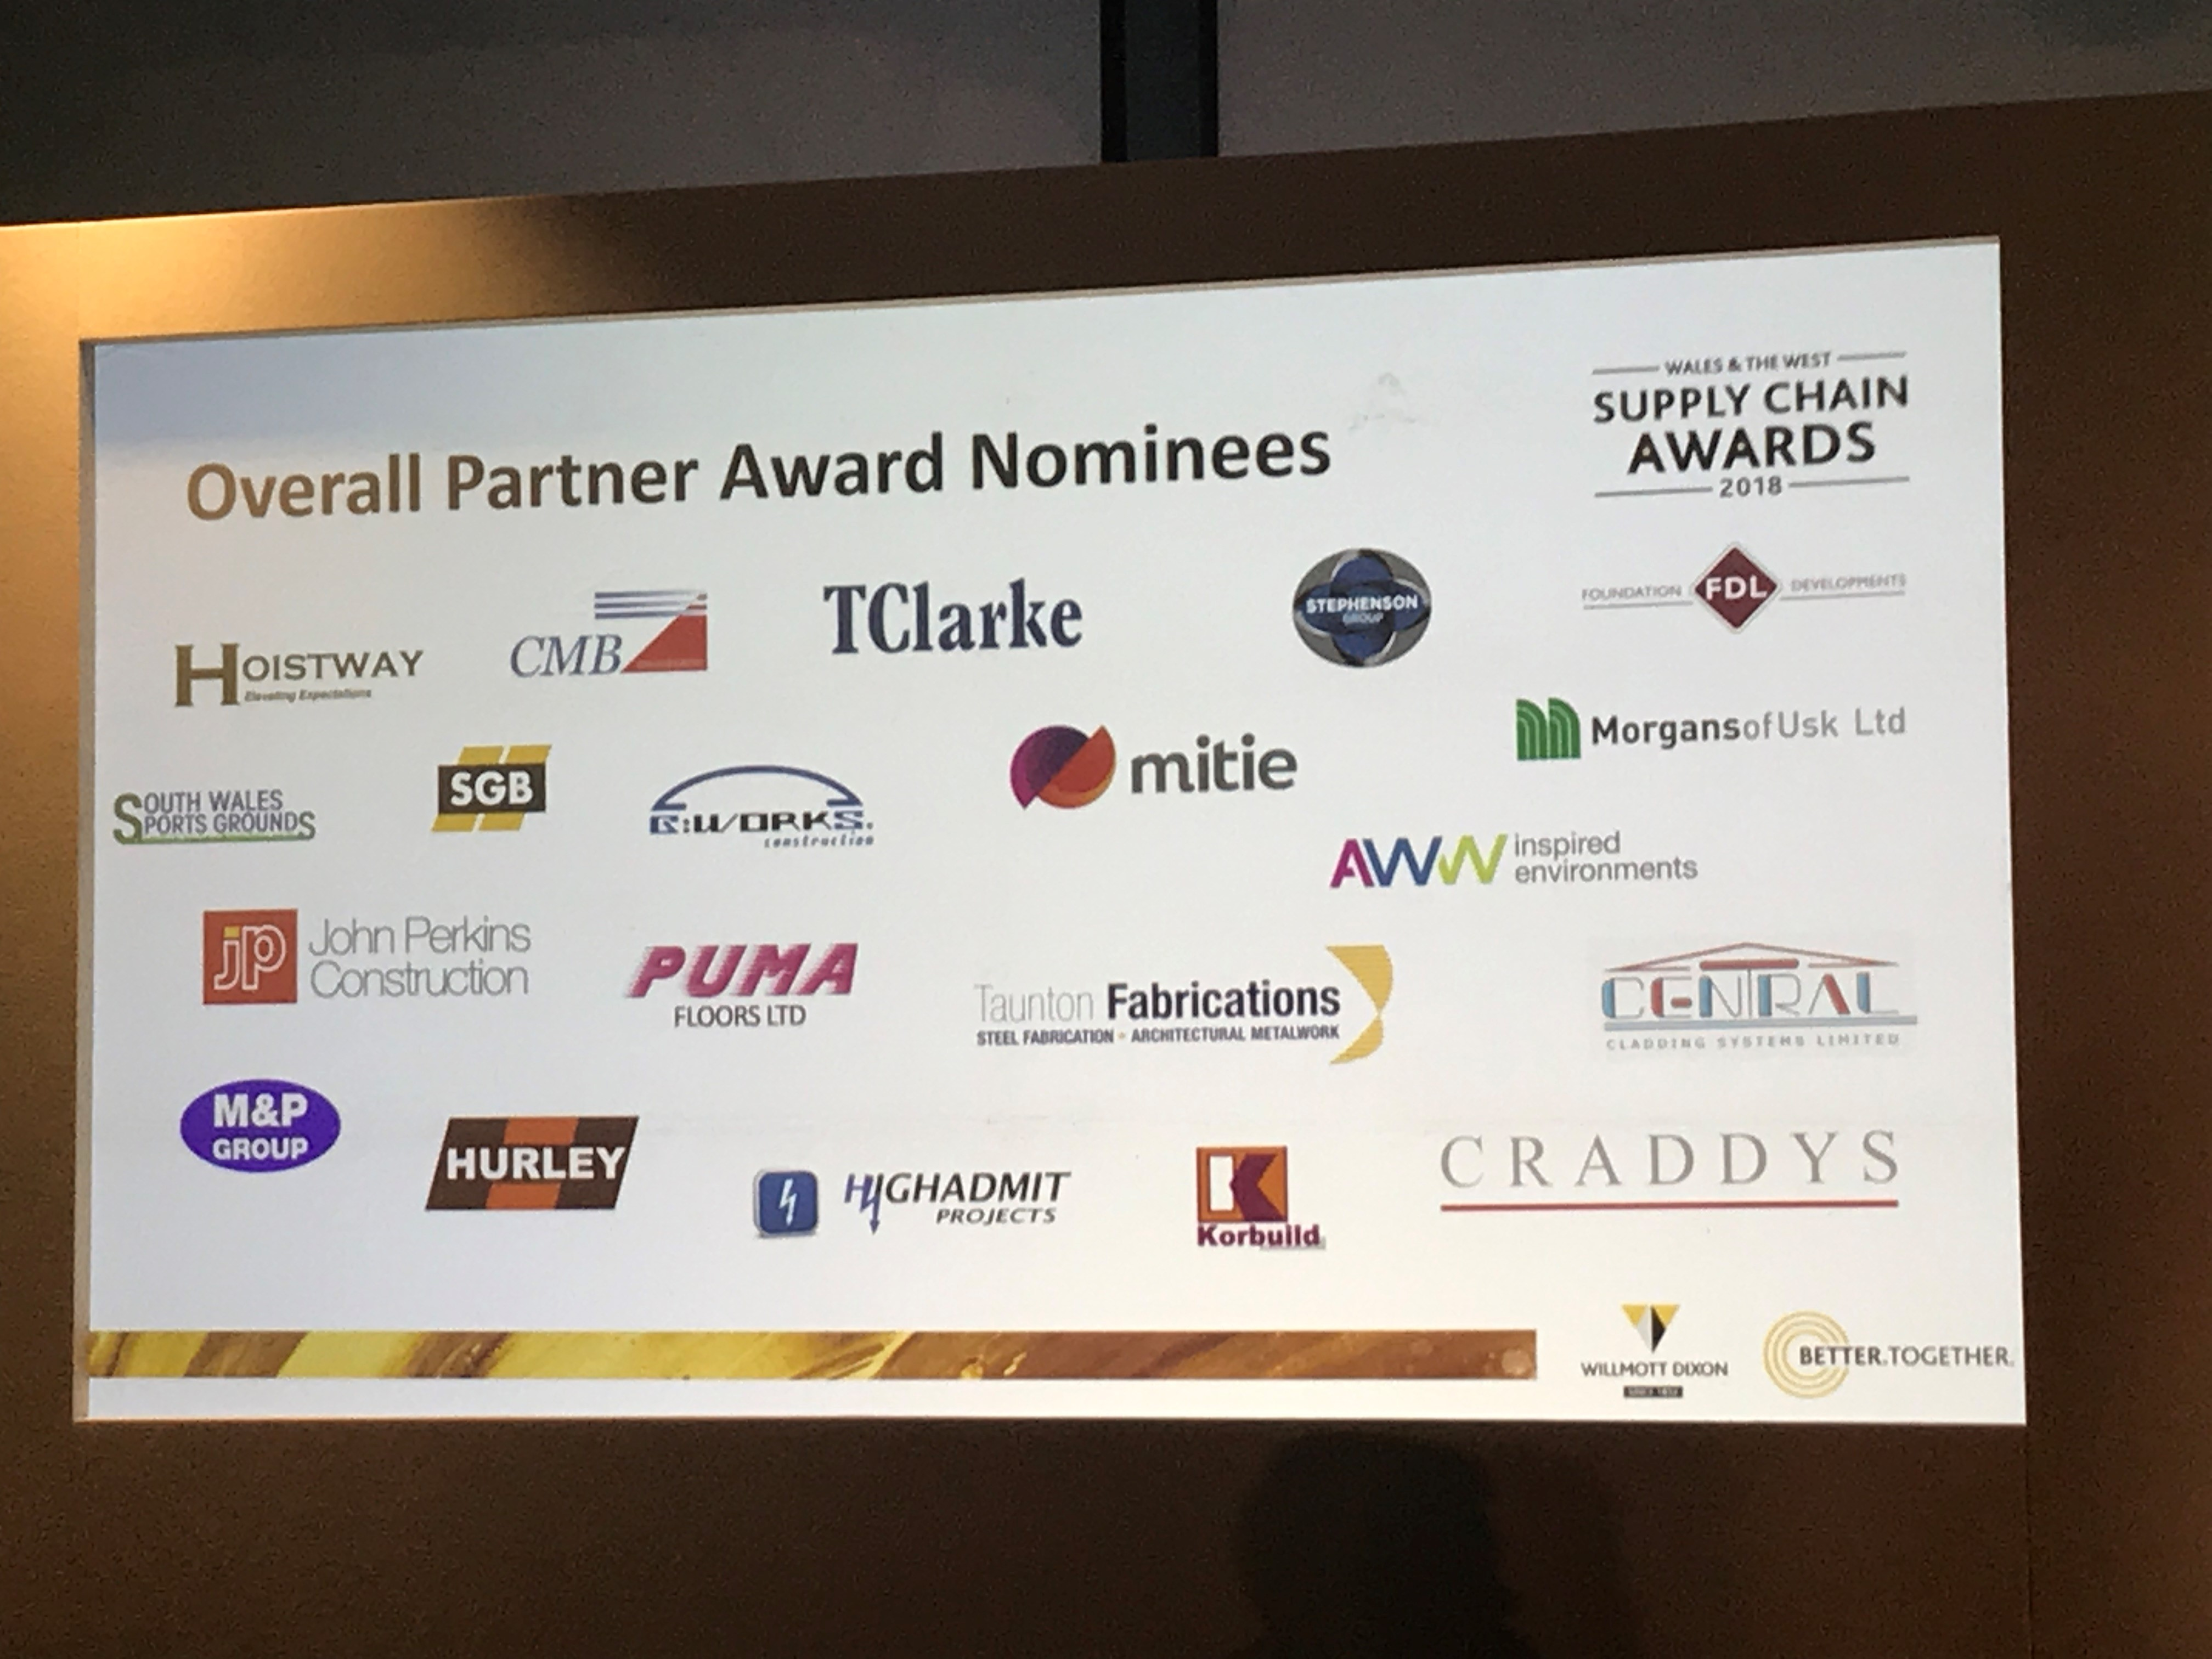 HOISTWAY PROUD TO BE NOMINATED FOR TWO AWARDS AT THE WILLMOTT DIXON WALES AND WEST SUPPLY CHAIN AWARDS